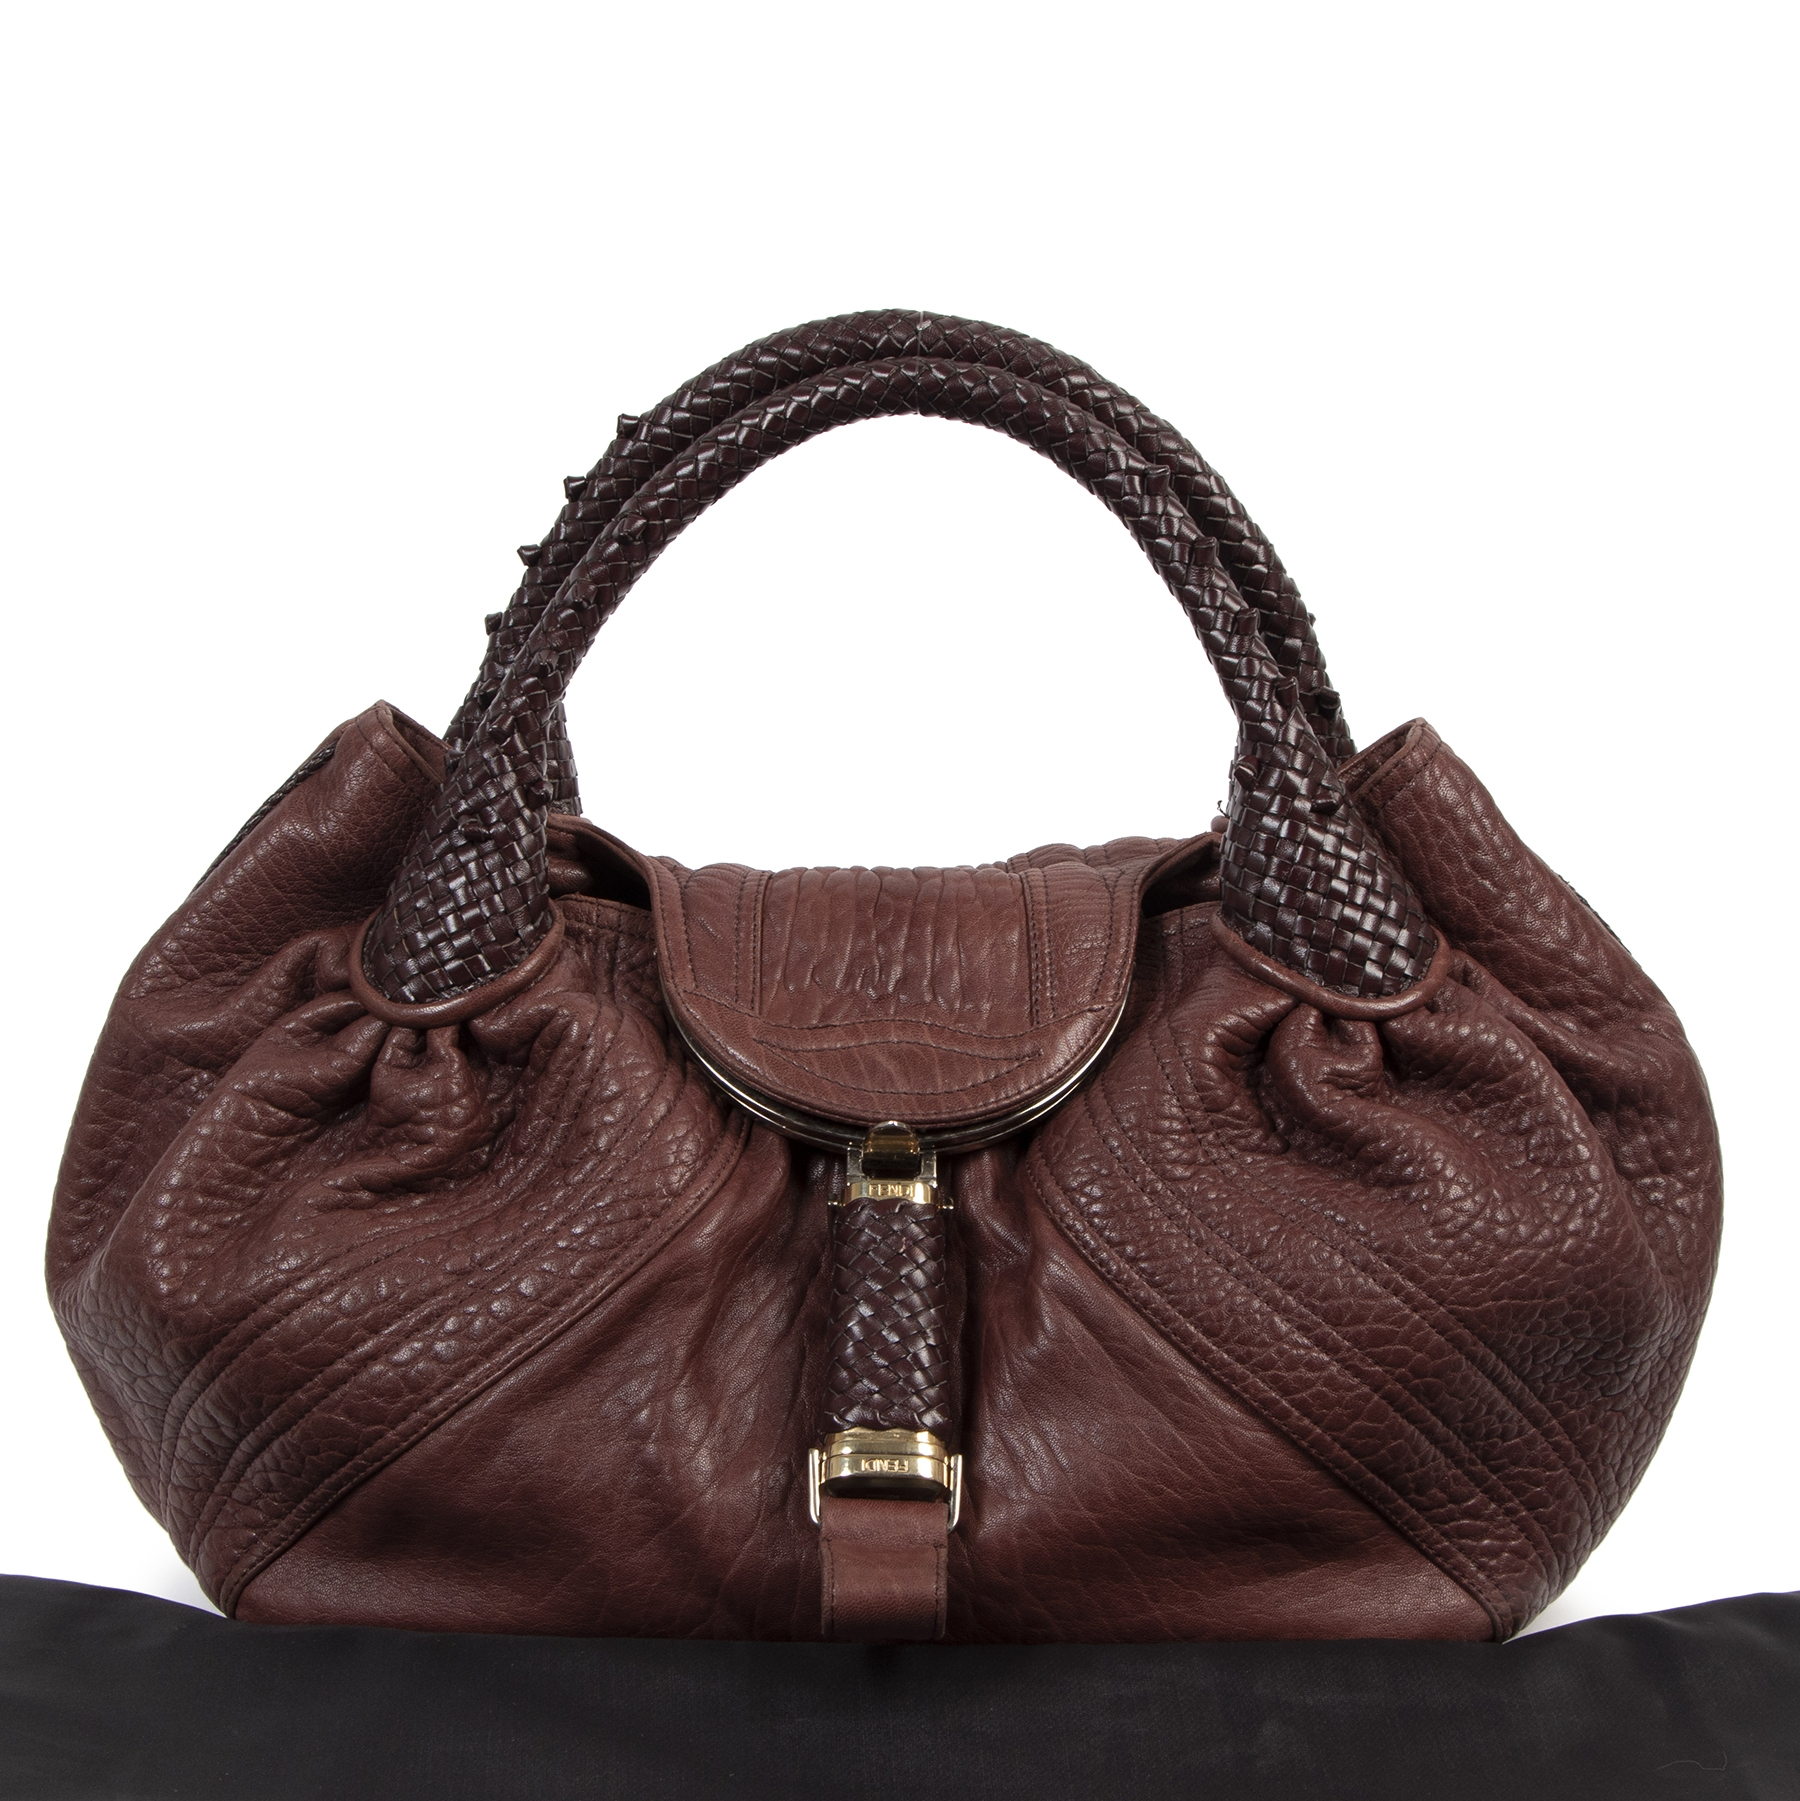 Authentieke tweedehands vintage Fendi Burgundy Spy Bag koop online webshop LabelLOV